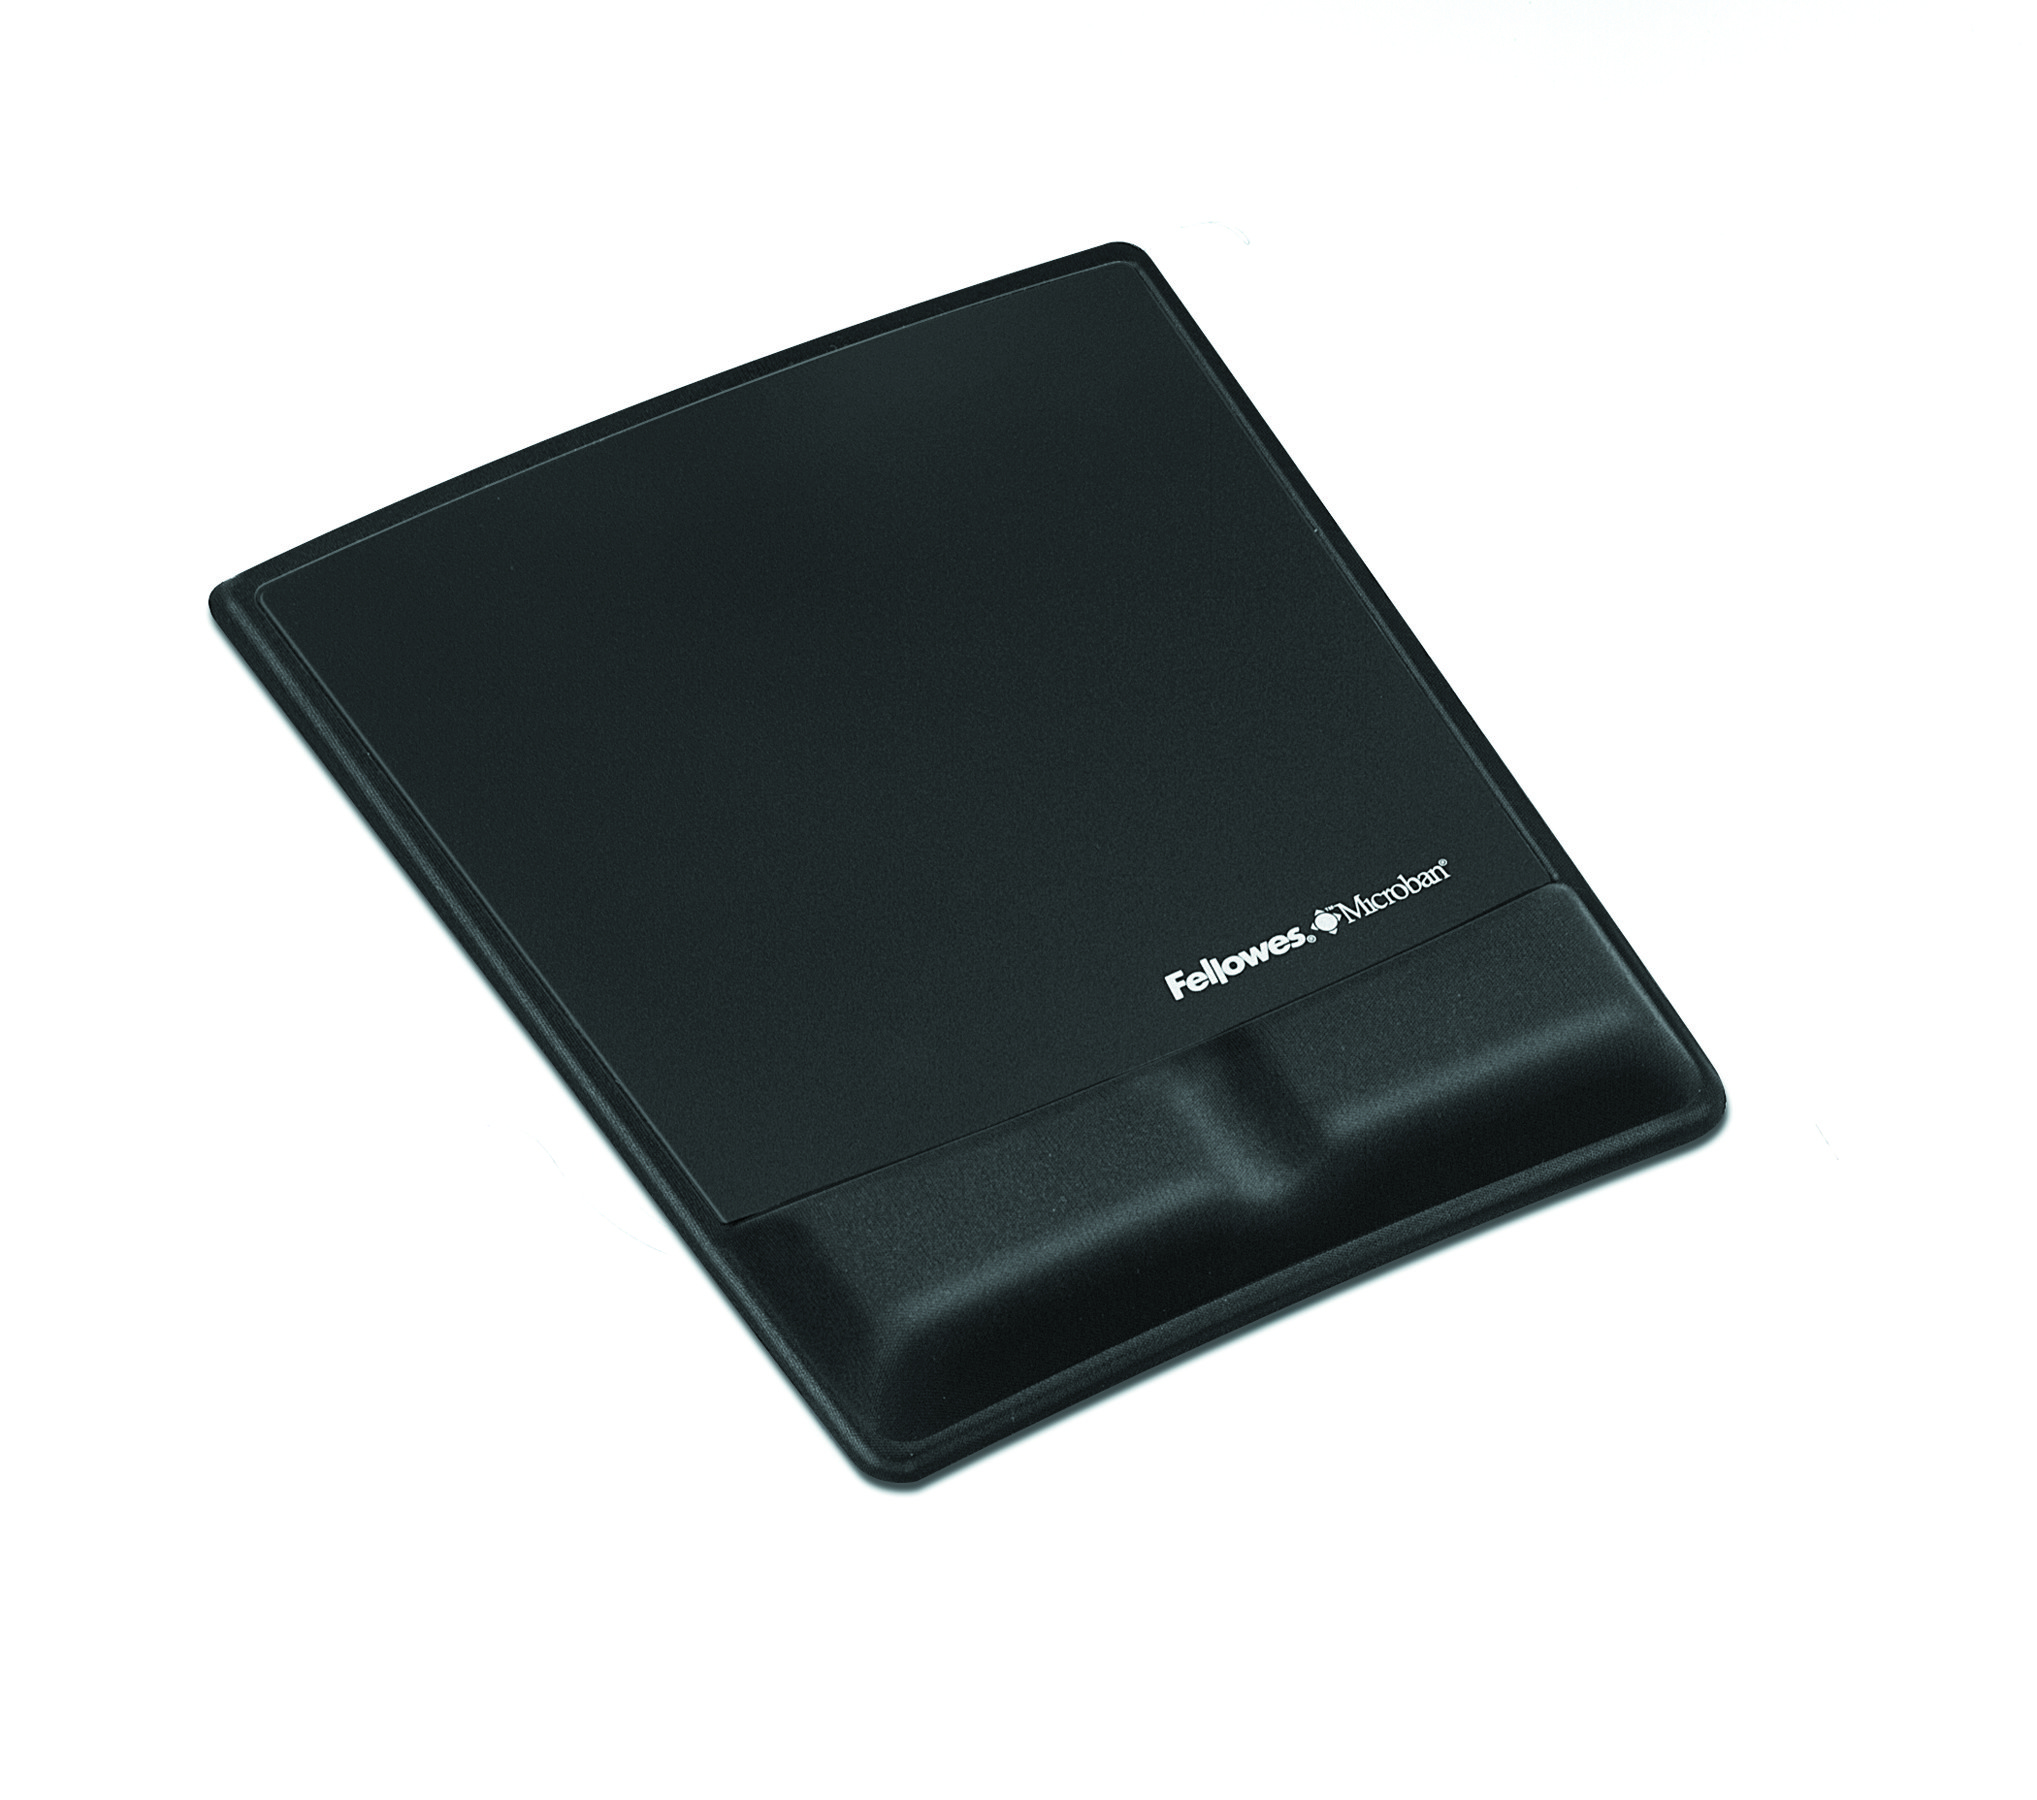 Mouse Pad / Wrist Support with Microban Protection - 9.9 inch x 8.3 inch x 0.9 inch Dimension - Black - Memory Foam Jersey